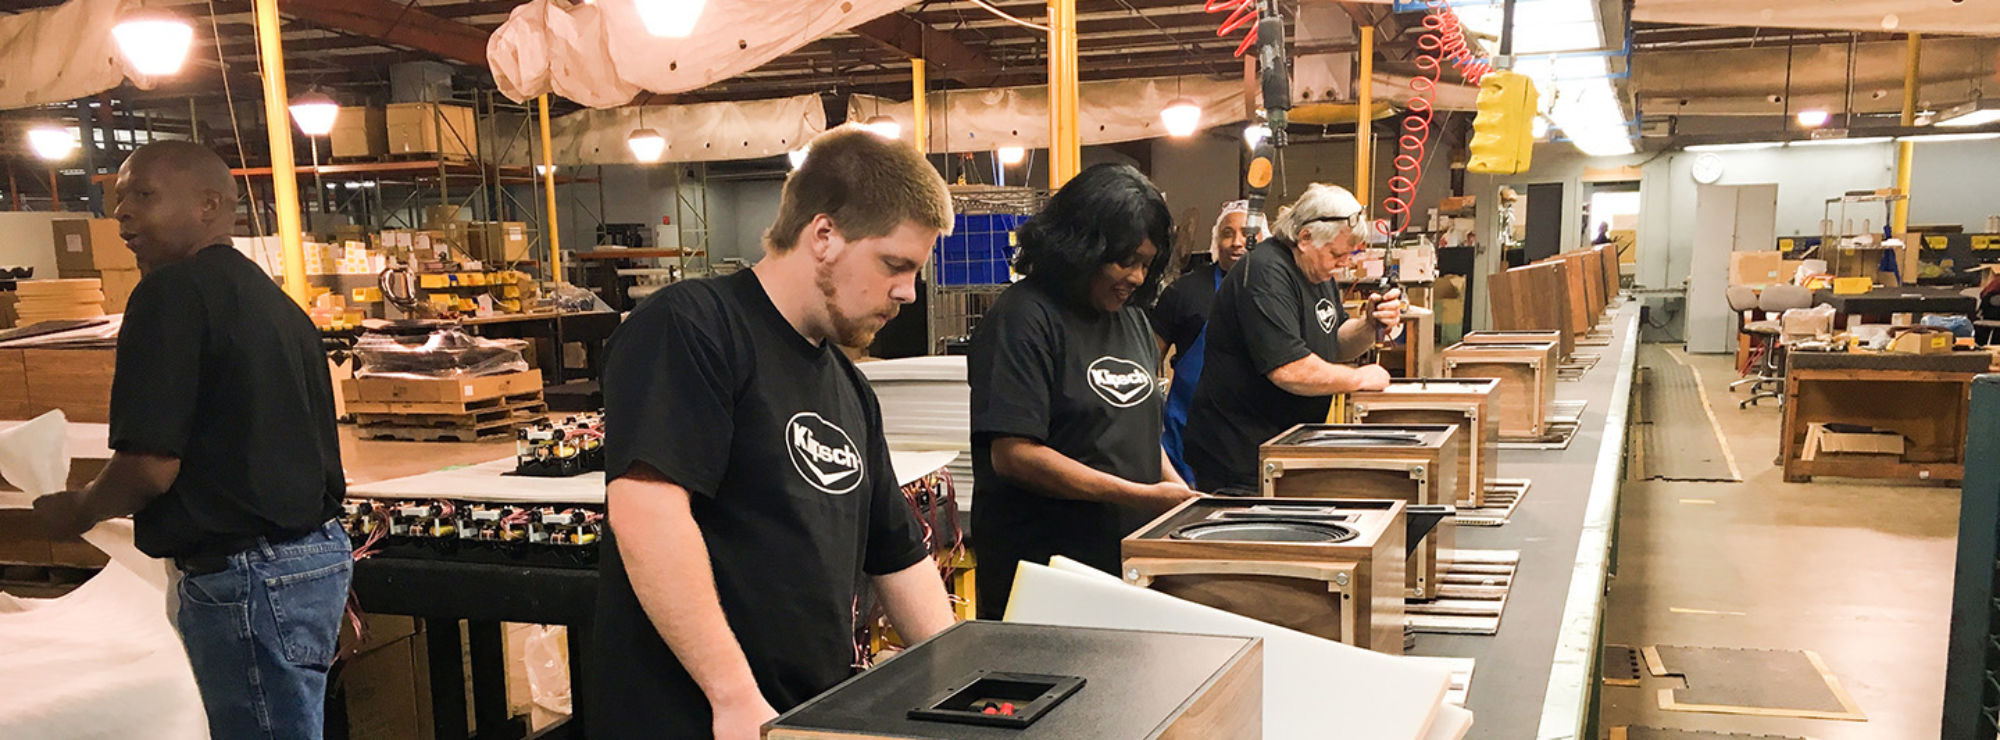 Klipsch employees building speakers on an assembly line